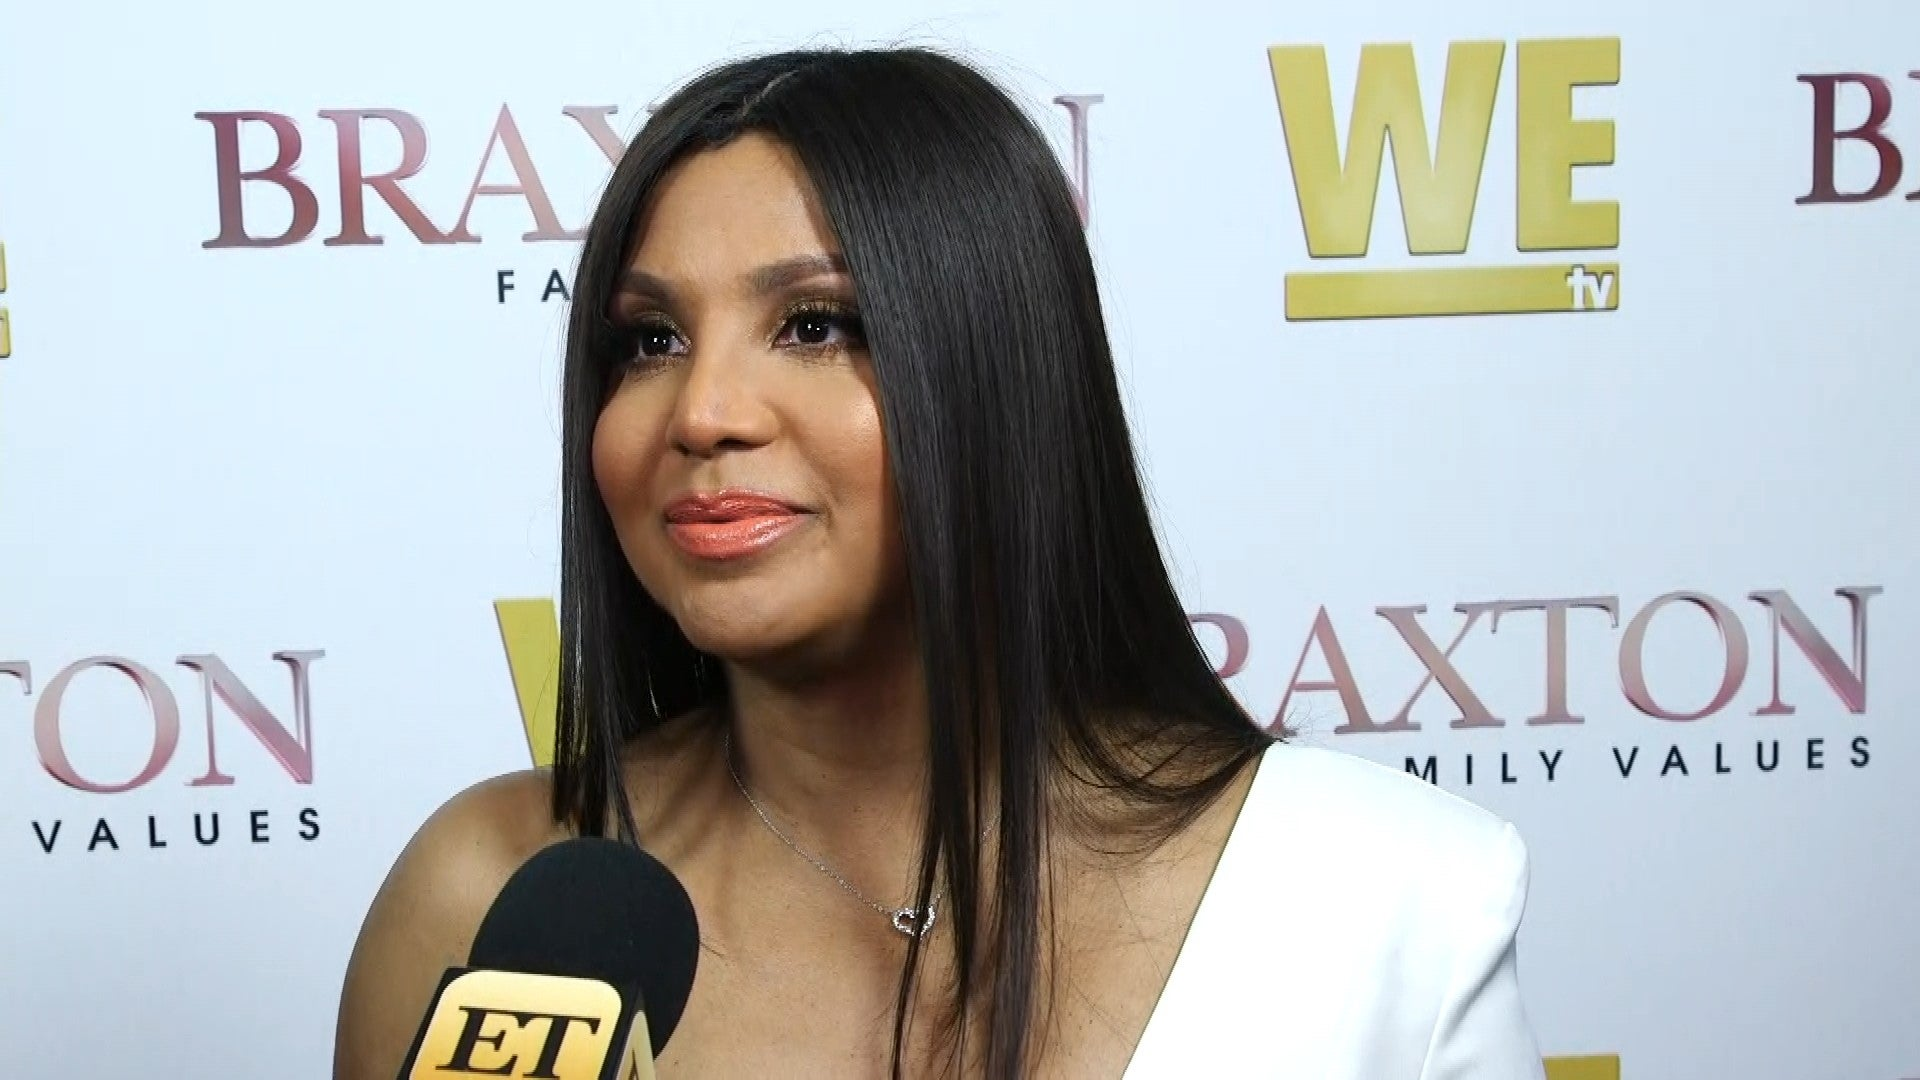 toni-braxton-restocks-her-merch-and-fans-could-not-be-more-excited